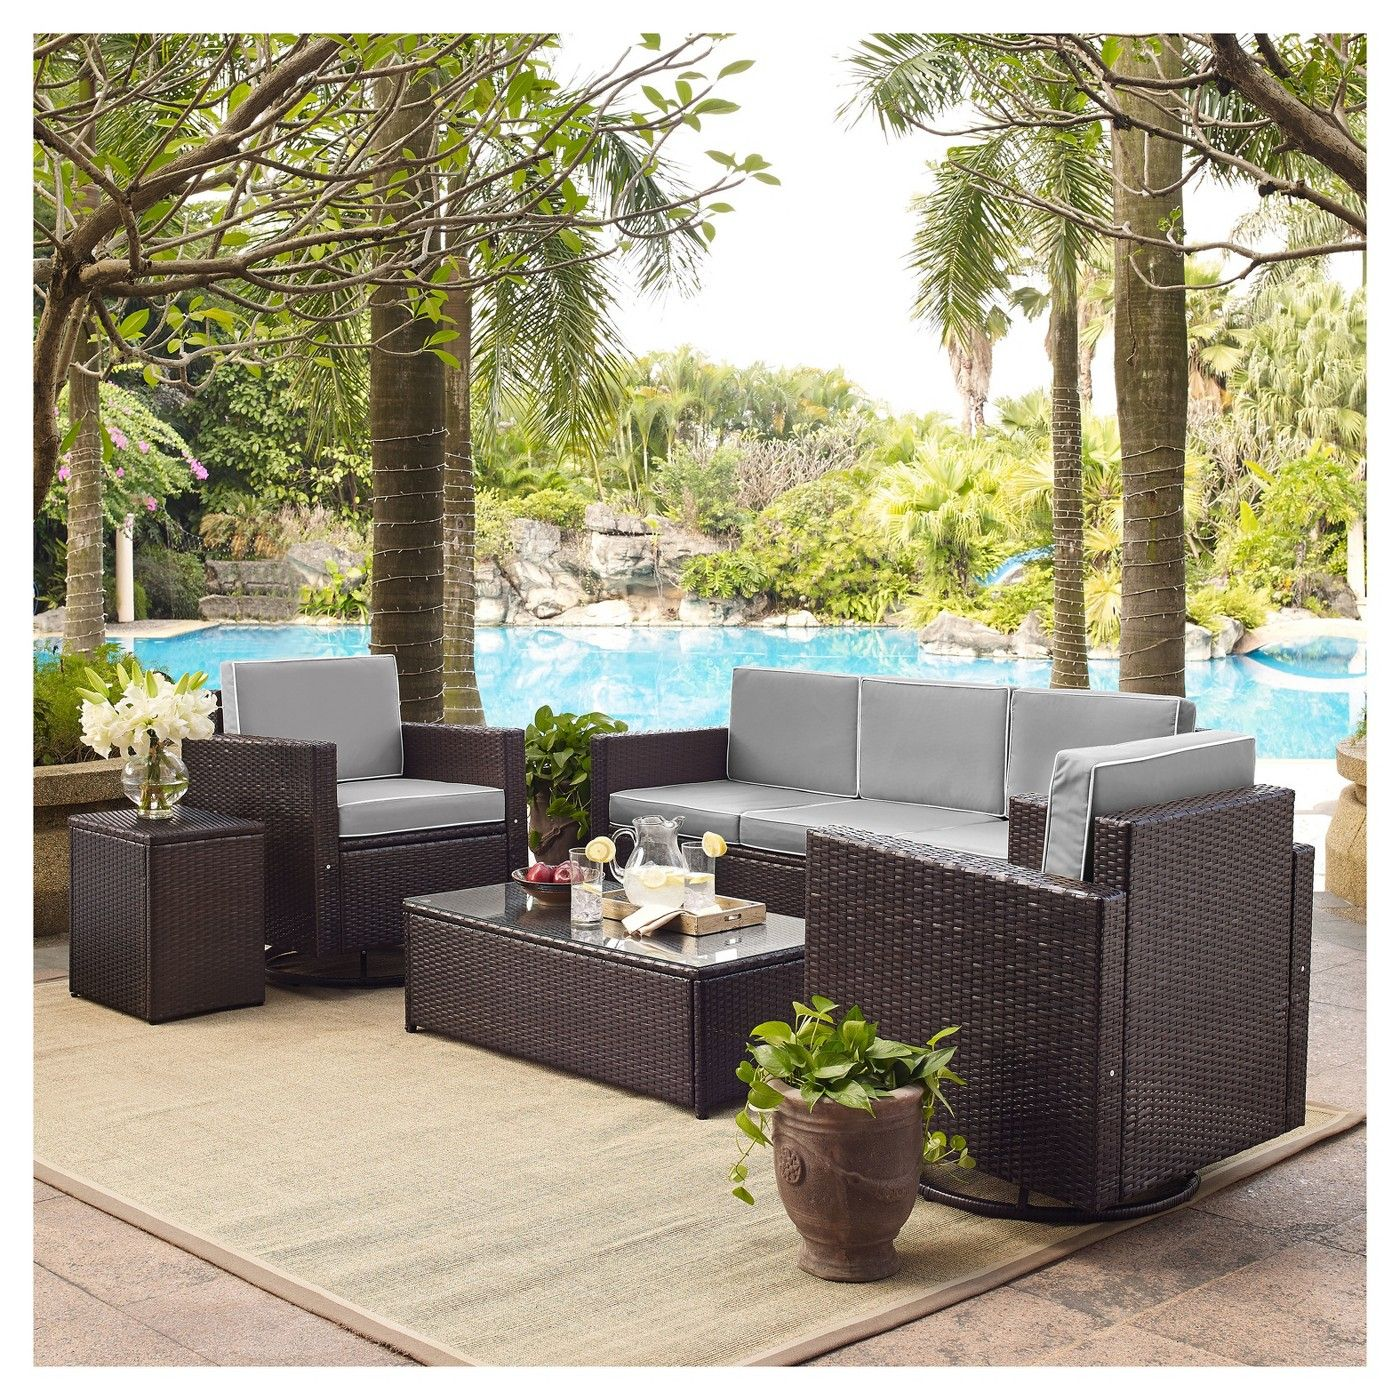 Palm Harbor 5pc All Weather Wicker Patio Sofa Conversation Set W Swivel Chairs Crosley Wicker Sofa Outdoor Conversation Set Patio Outdoor Wicker Furniture